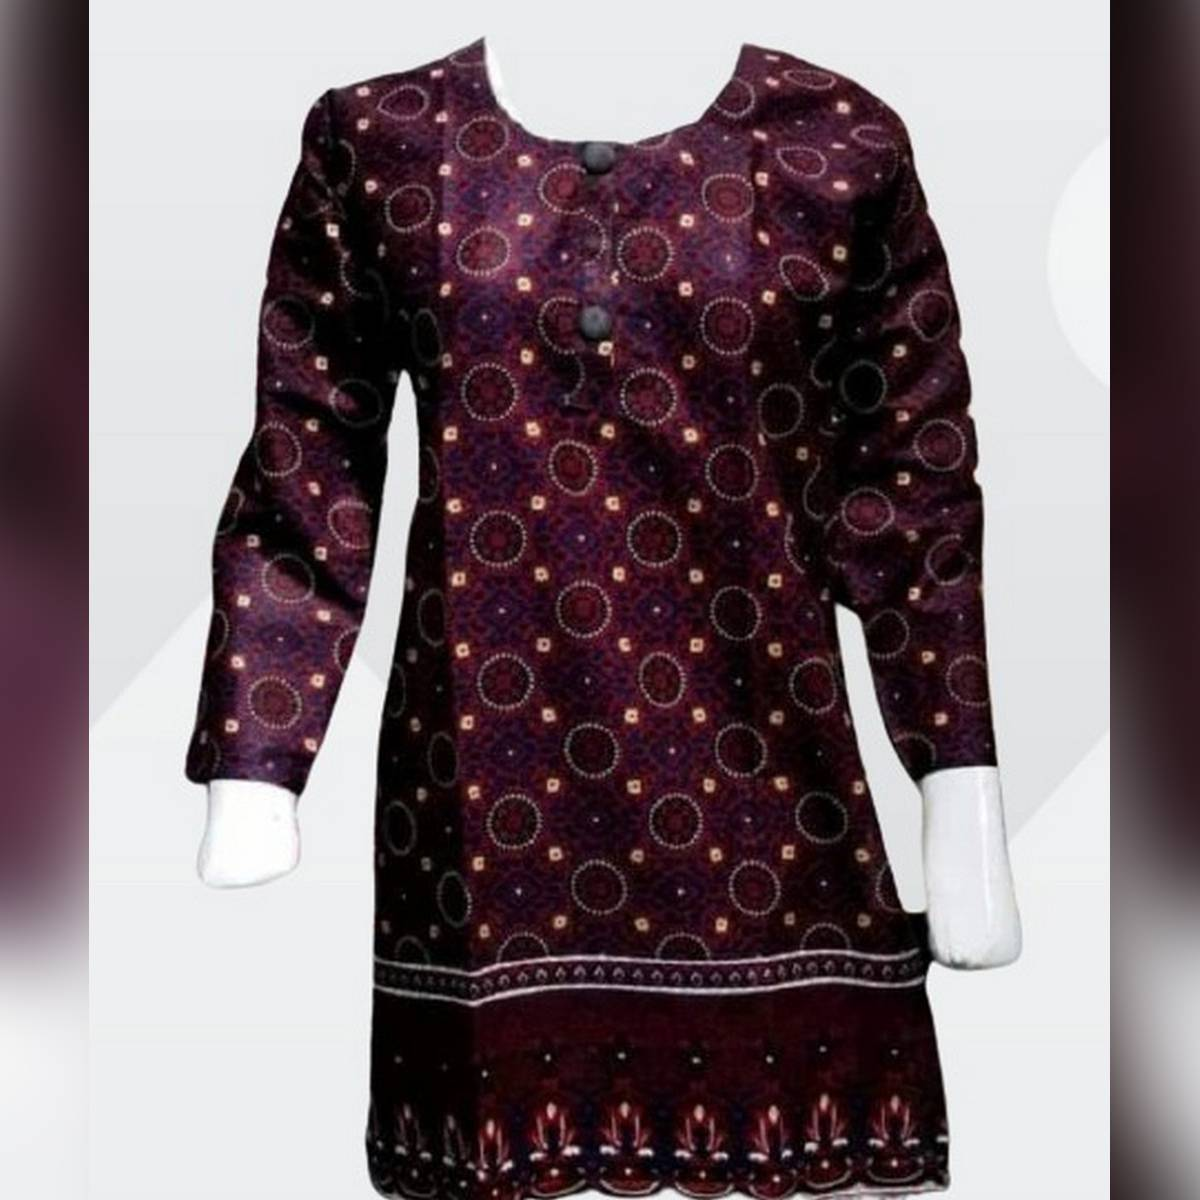 Printed Lawn Kurti For Ladies and Girls Good Quality FAbric Fashion Style Trending sindhi